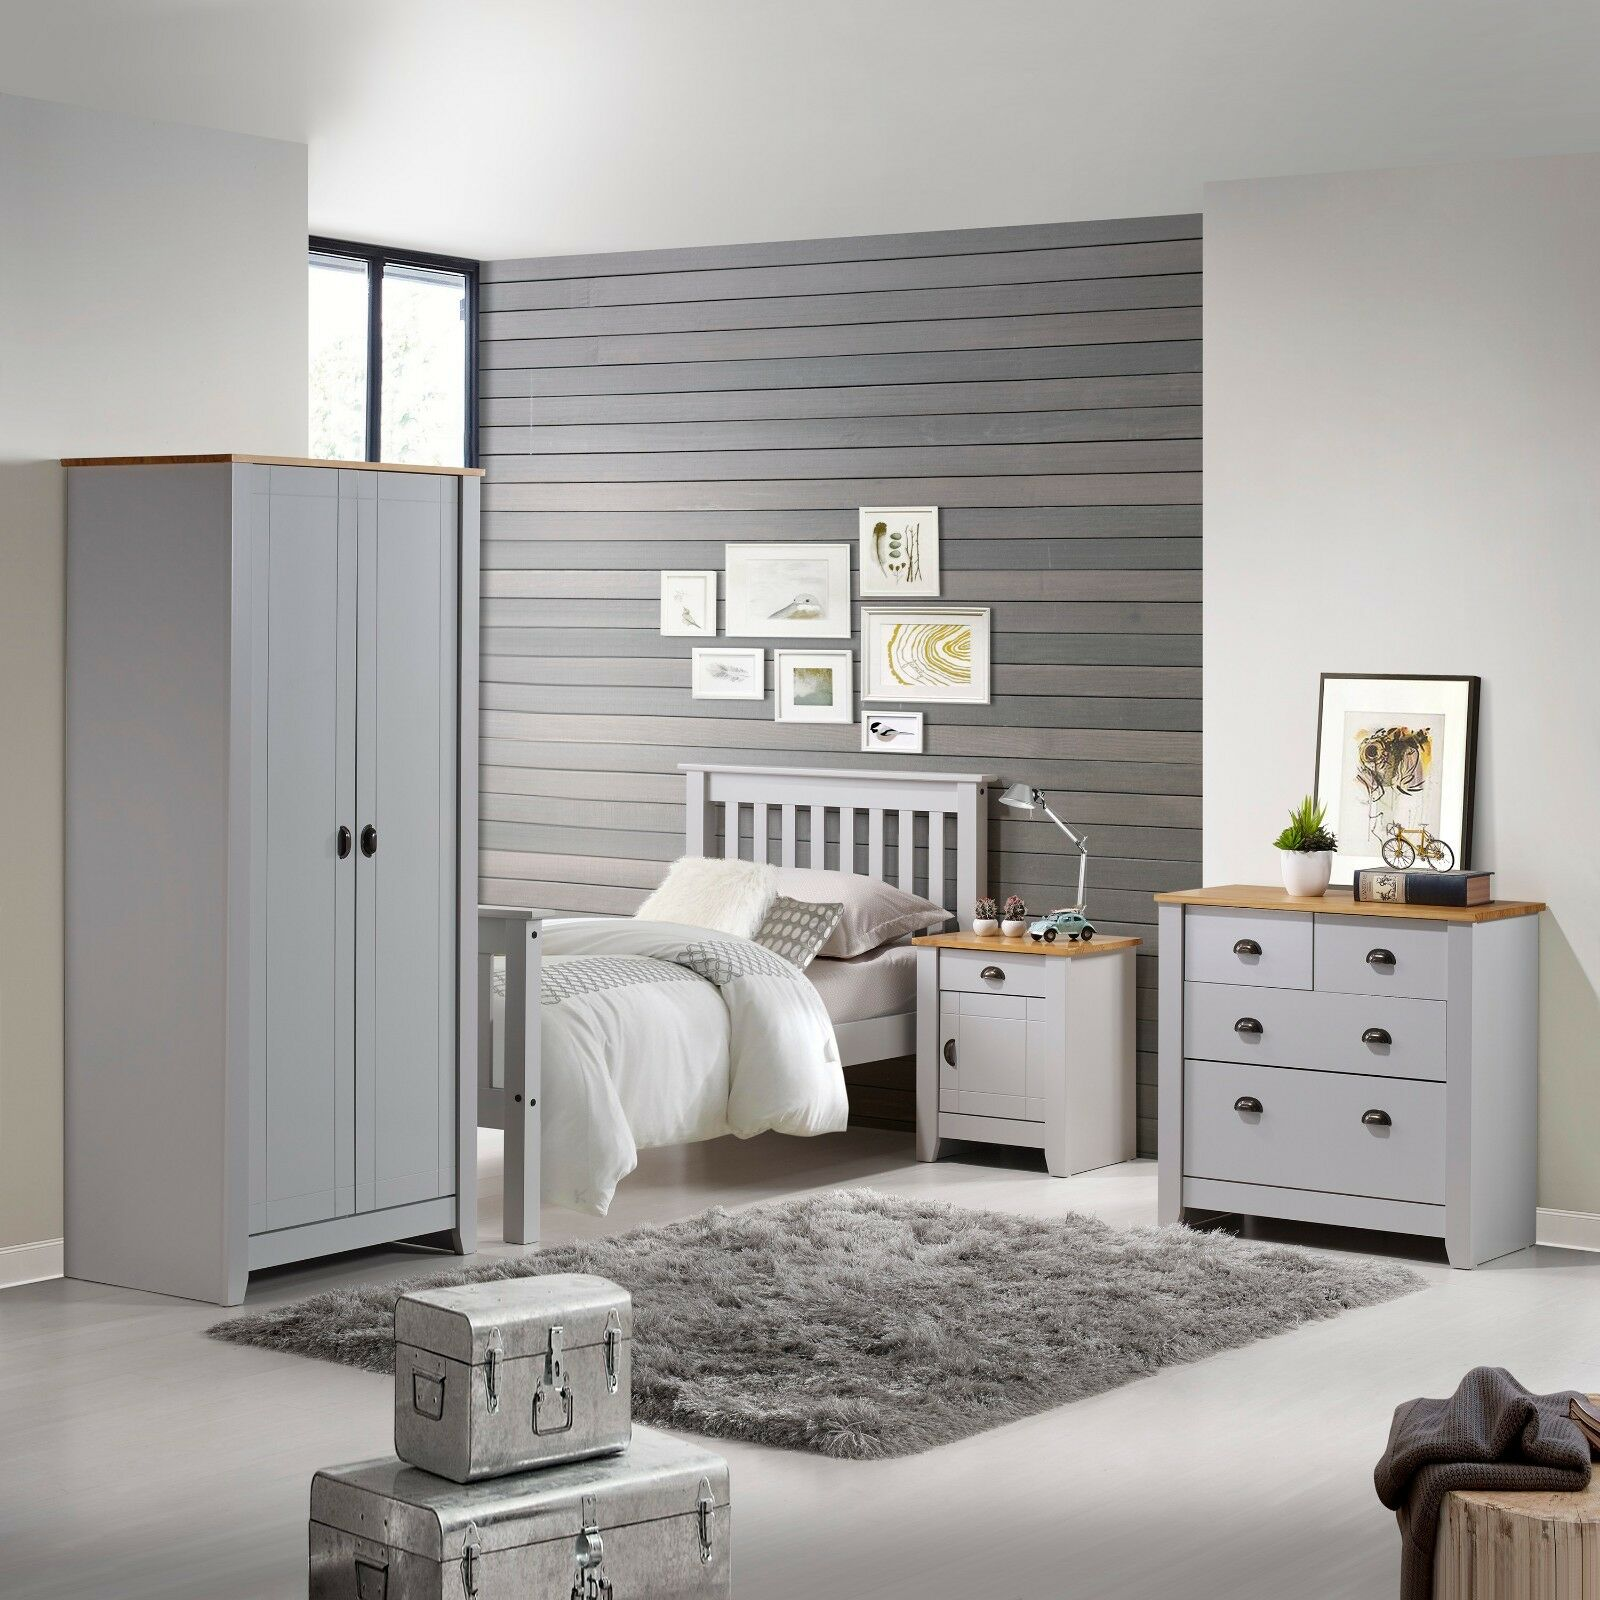 Details About Ludlow Pine Top Grey Bedroom Furniture Bedsides Wardrobes Chests Sets New